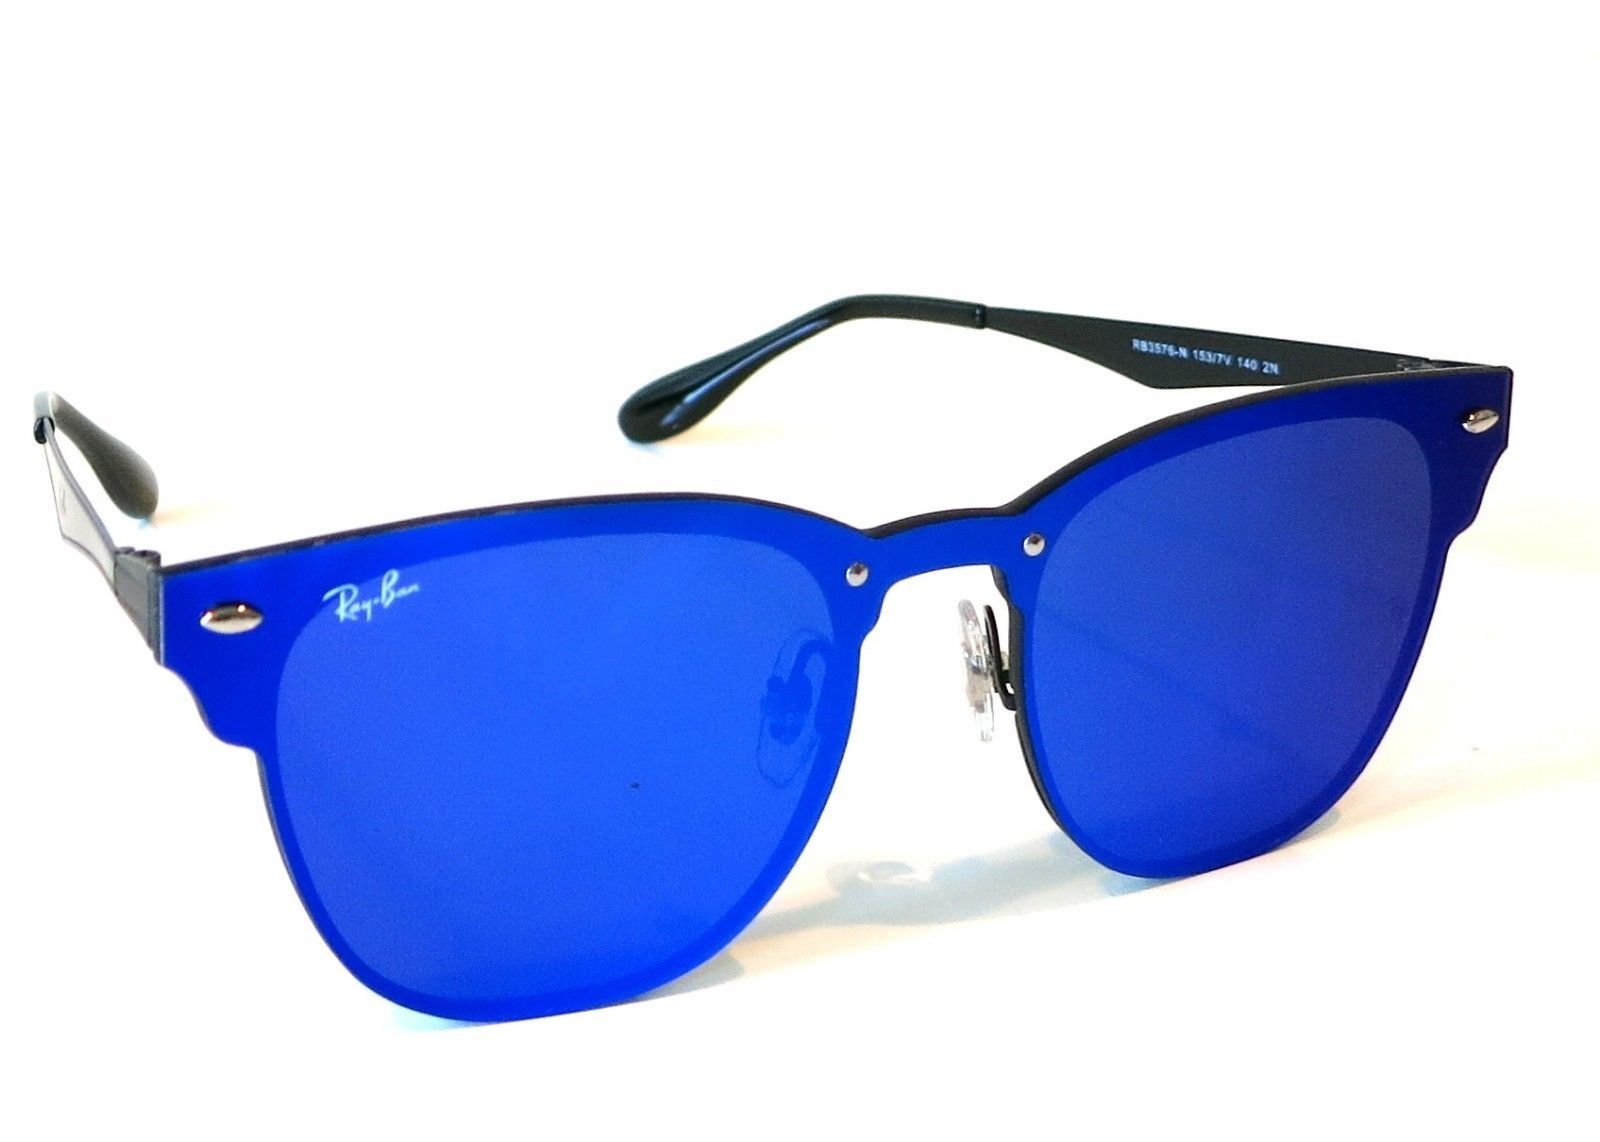 f948661217 S l1600. S l1600. Previous. Rayban Blaze Clubmaster Sunglasses RB3576N  153 7V 47 Violet Blue Mirror club